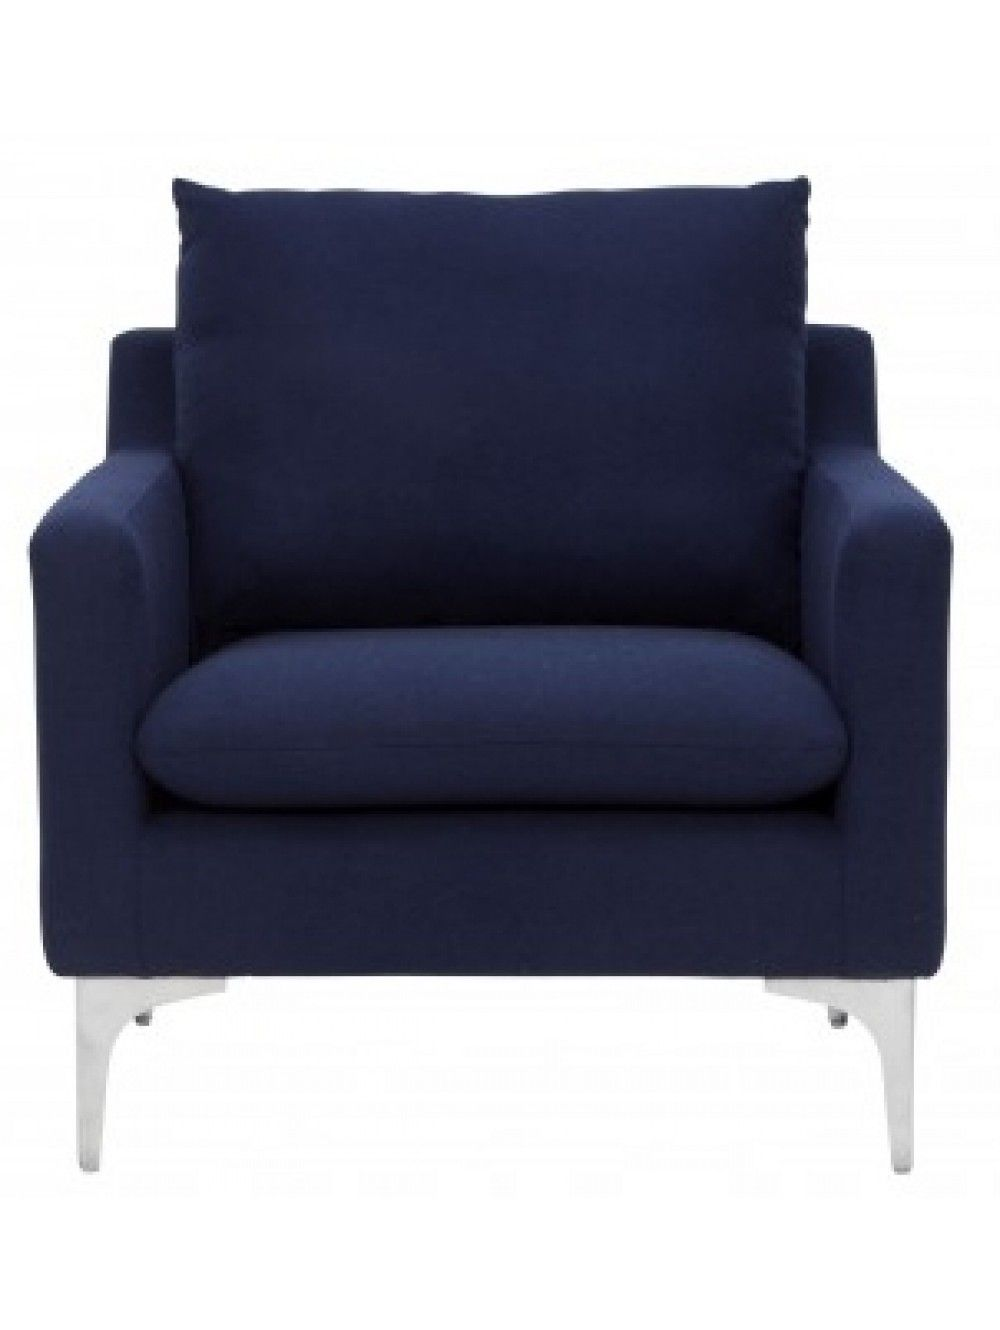 Lawrence Chair, Navy Blue Comfy leather chair, Chair